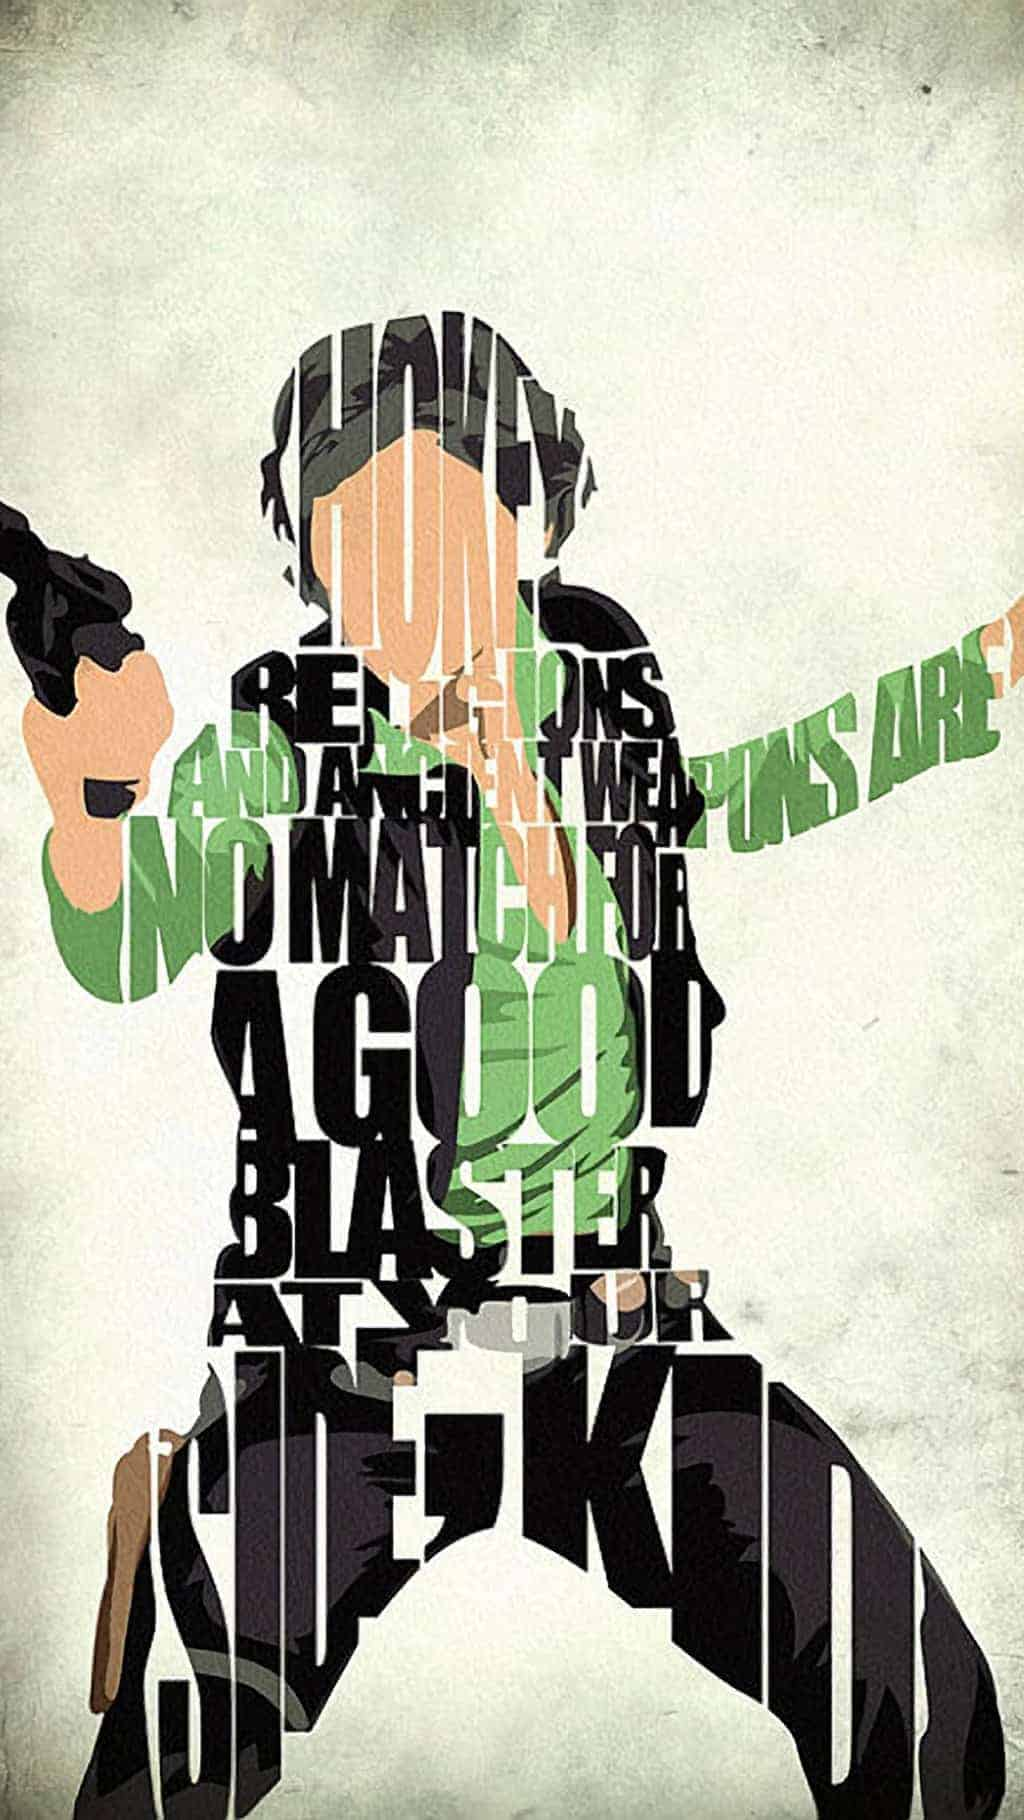 Han Solo Typography Wallpaper iphone